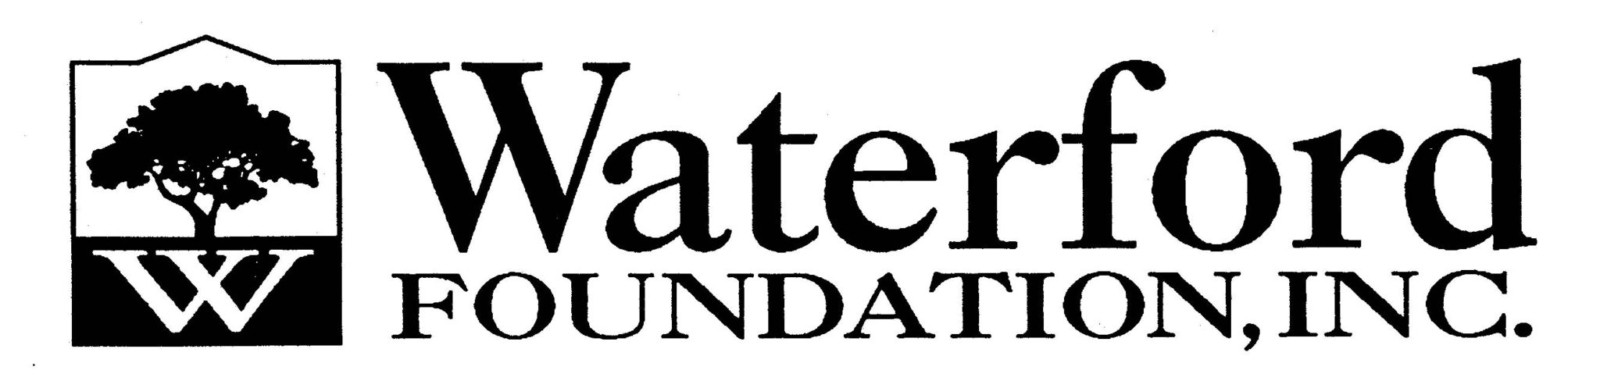 Waterford Foundation logo type&tree3